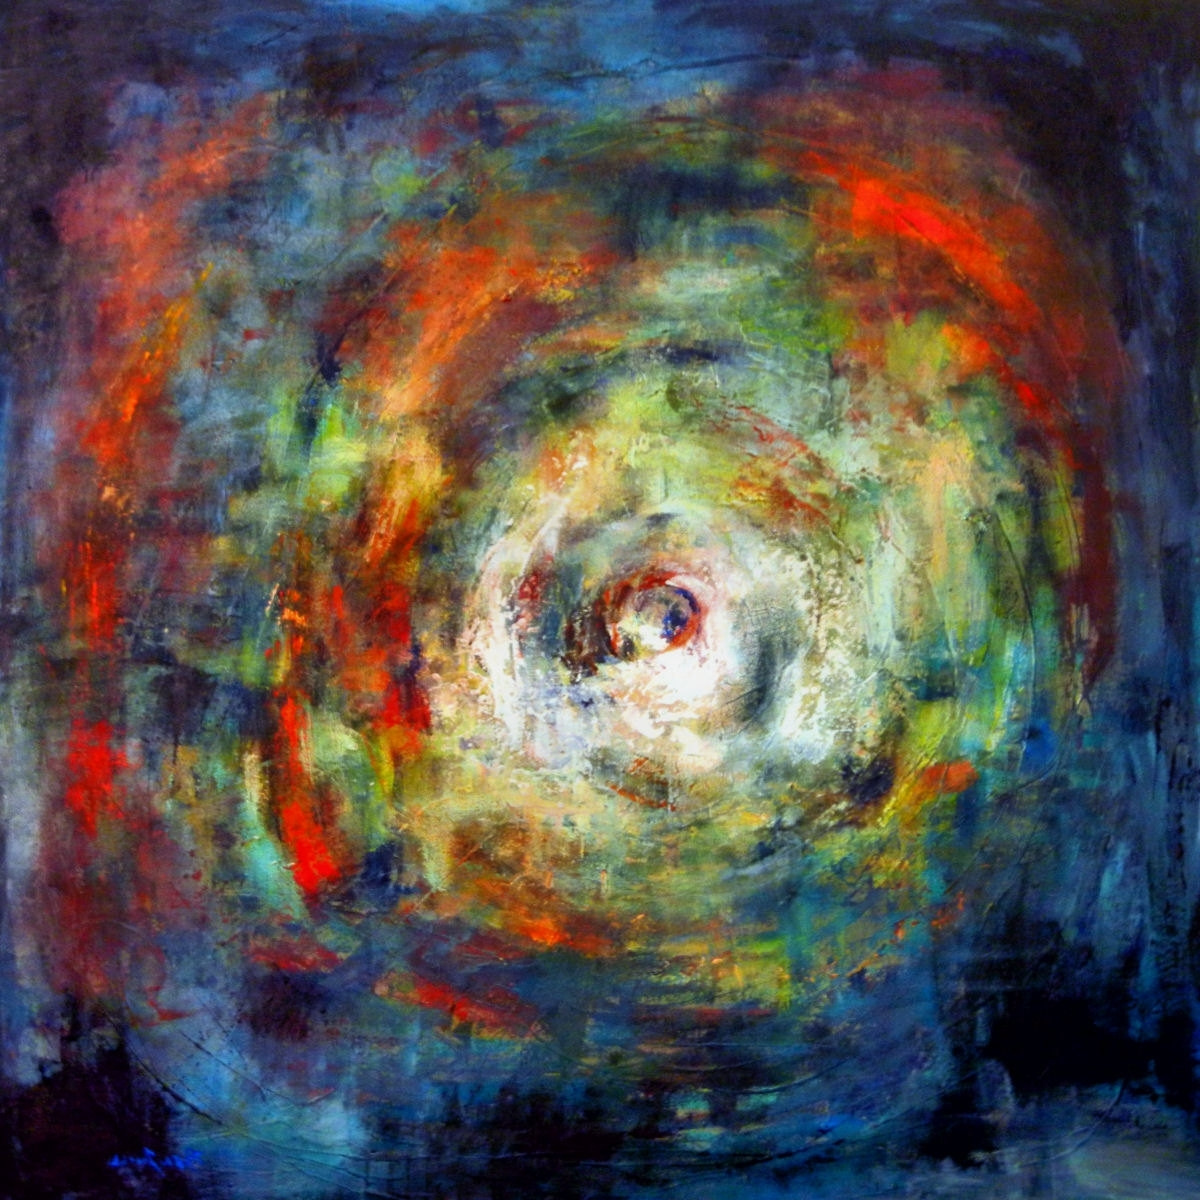 Favorite Huge Vortex Art Abstract Painting On Canvas – 48X48 – Modern Wall With 48X48 Canvas Wall Art (View 6 of 15)